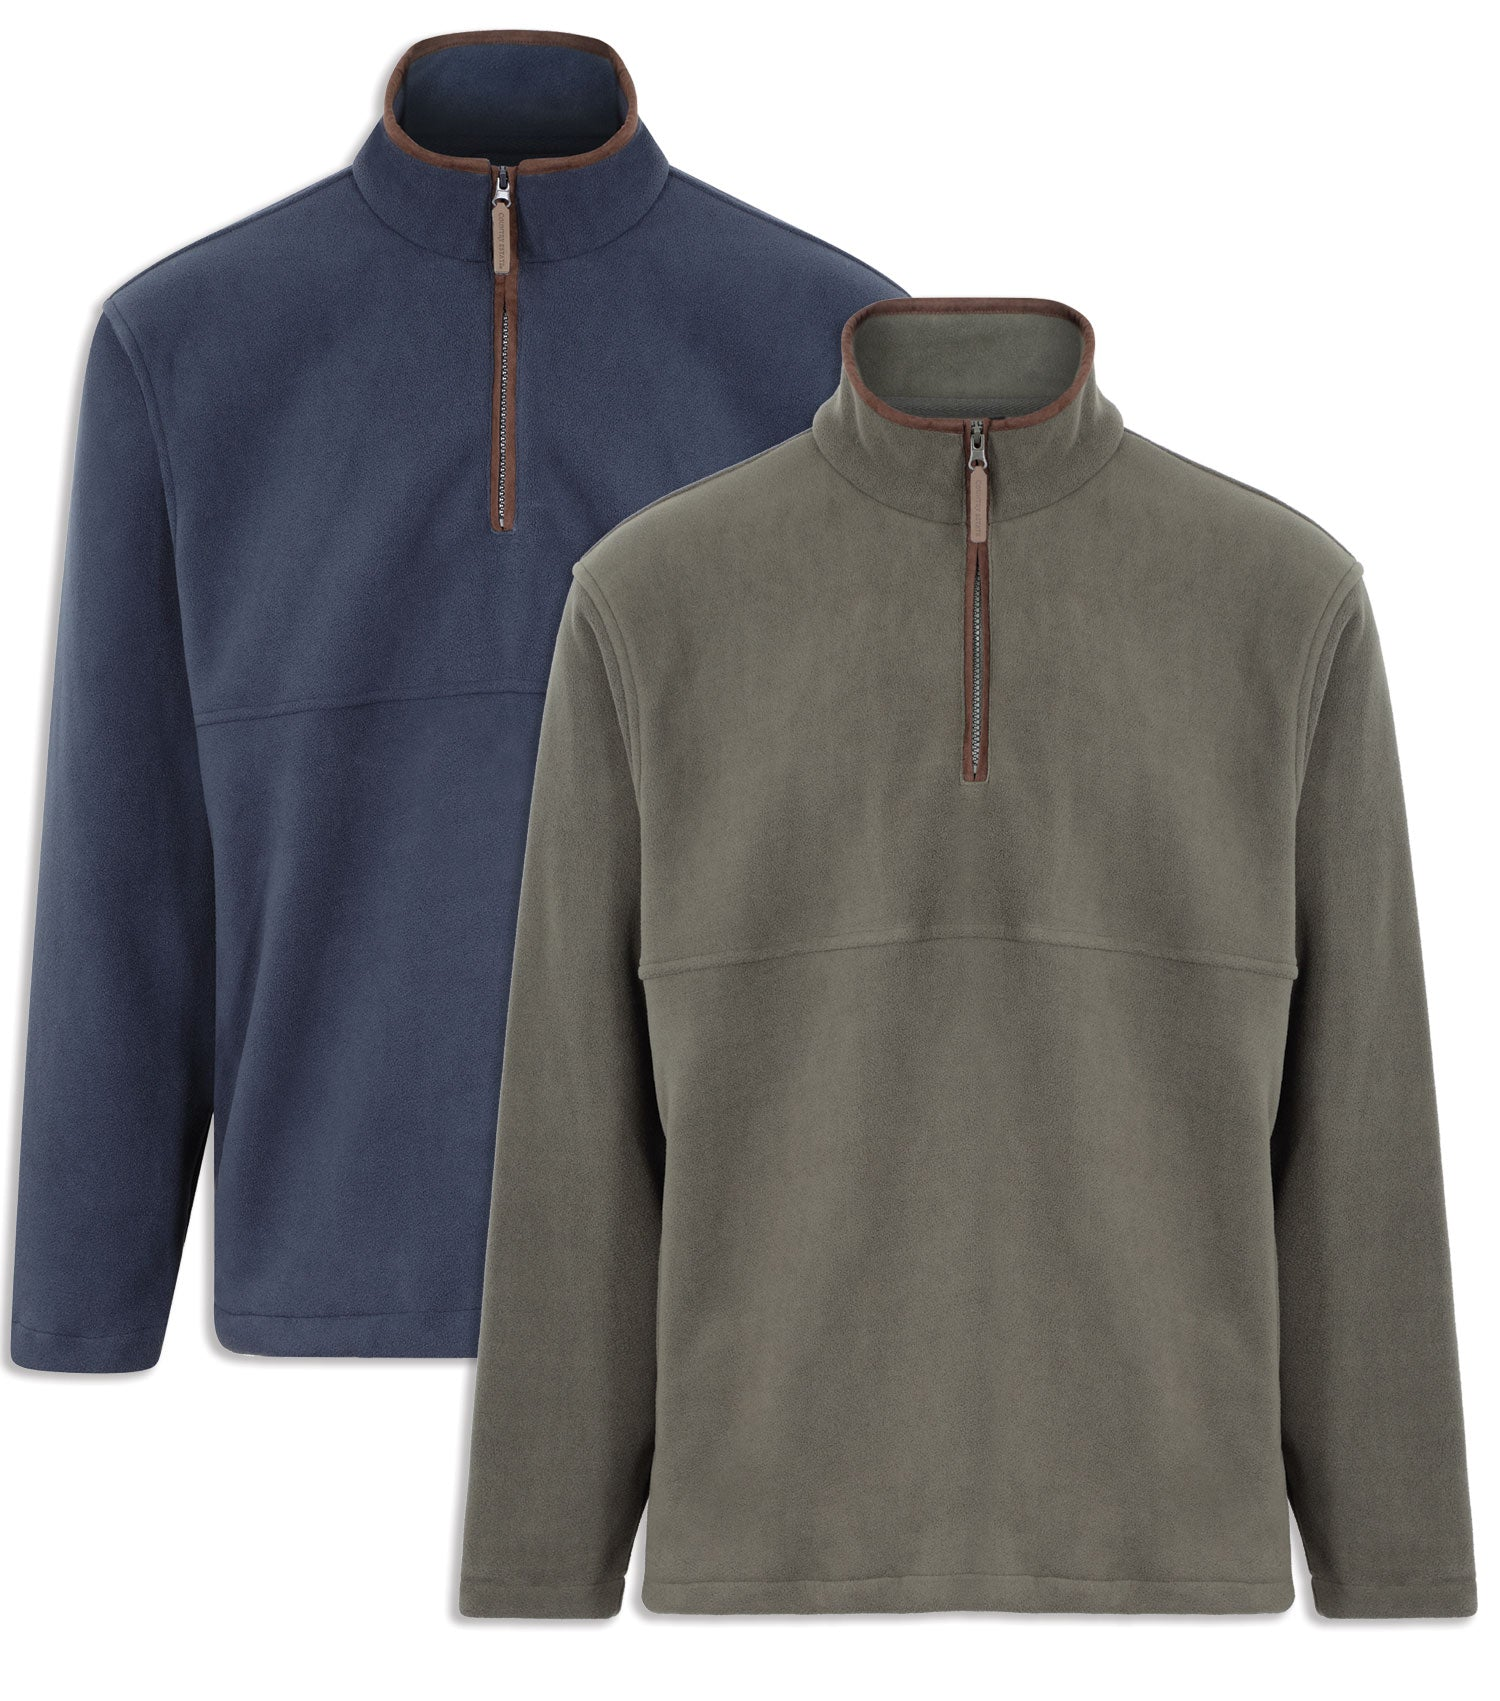 Champion Oban Half Zip Fleece | Olive and Navy